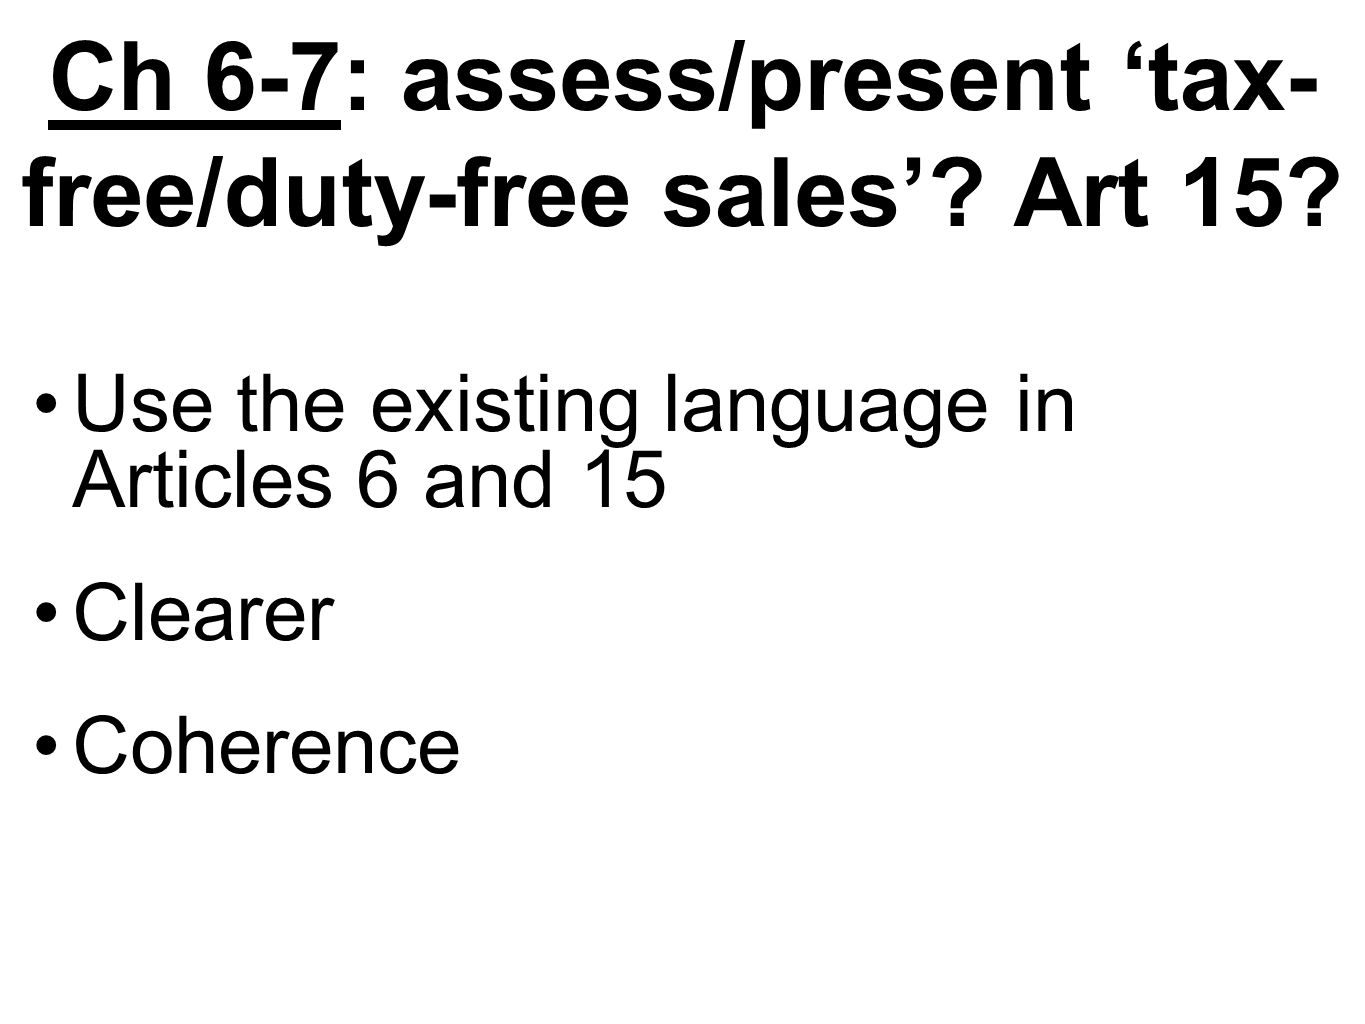 Ch 6-7: assess/present 'tax-free/duty-free sales' Art 15